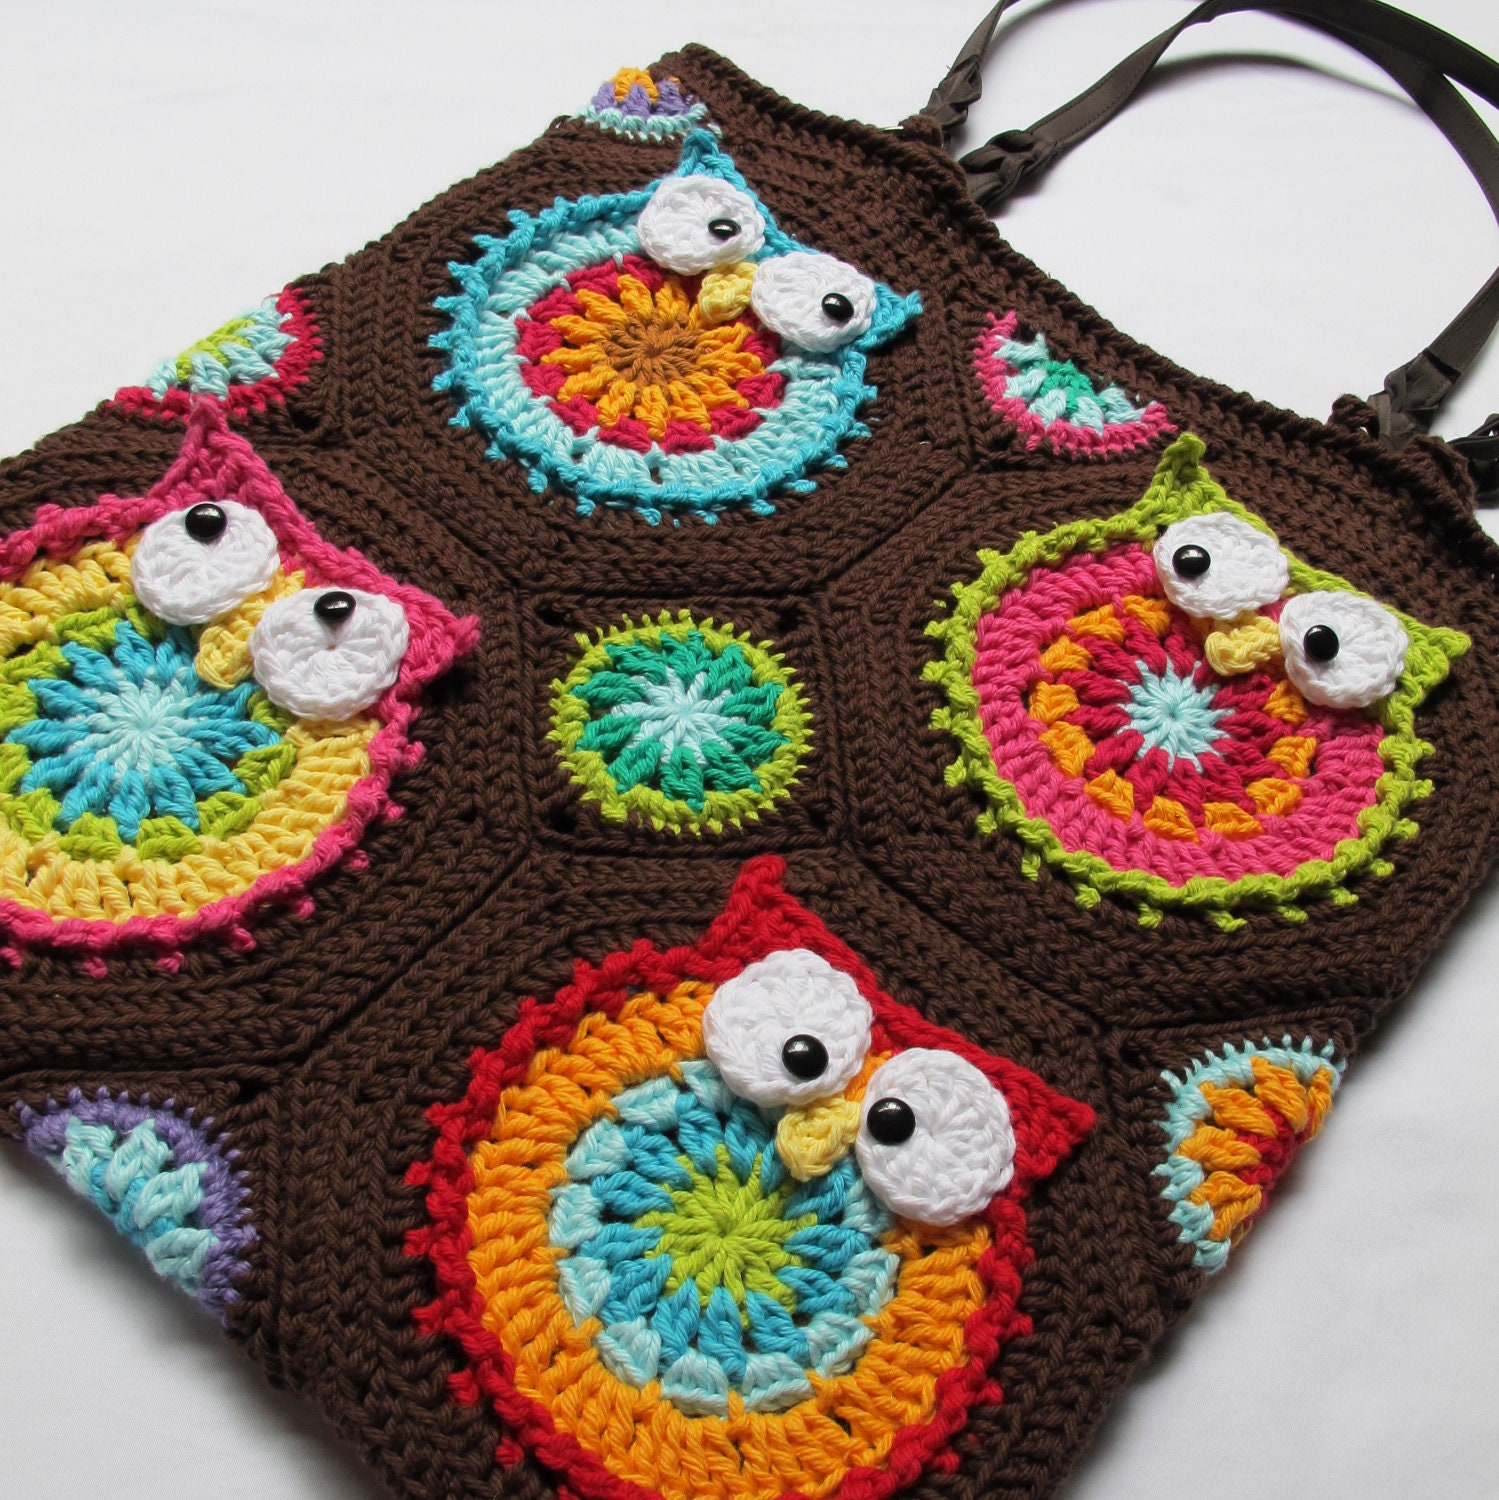 CROCHET PATTERN - Owl Tote'em - a CoLorFuL owl tote - Instant PDF Download - TheHatandI